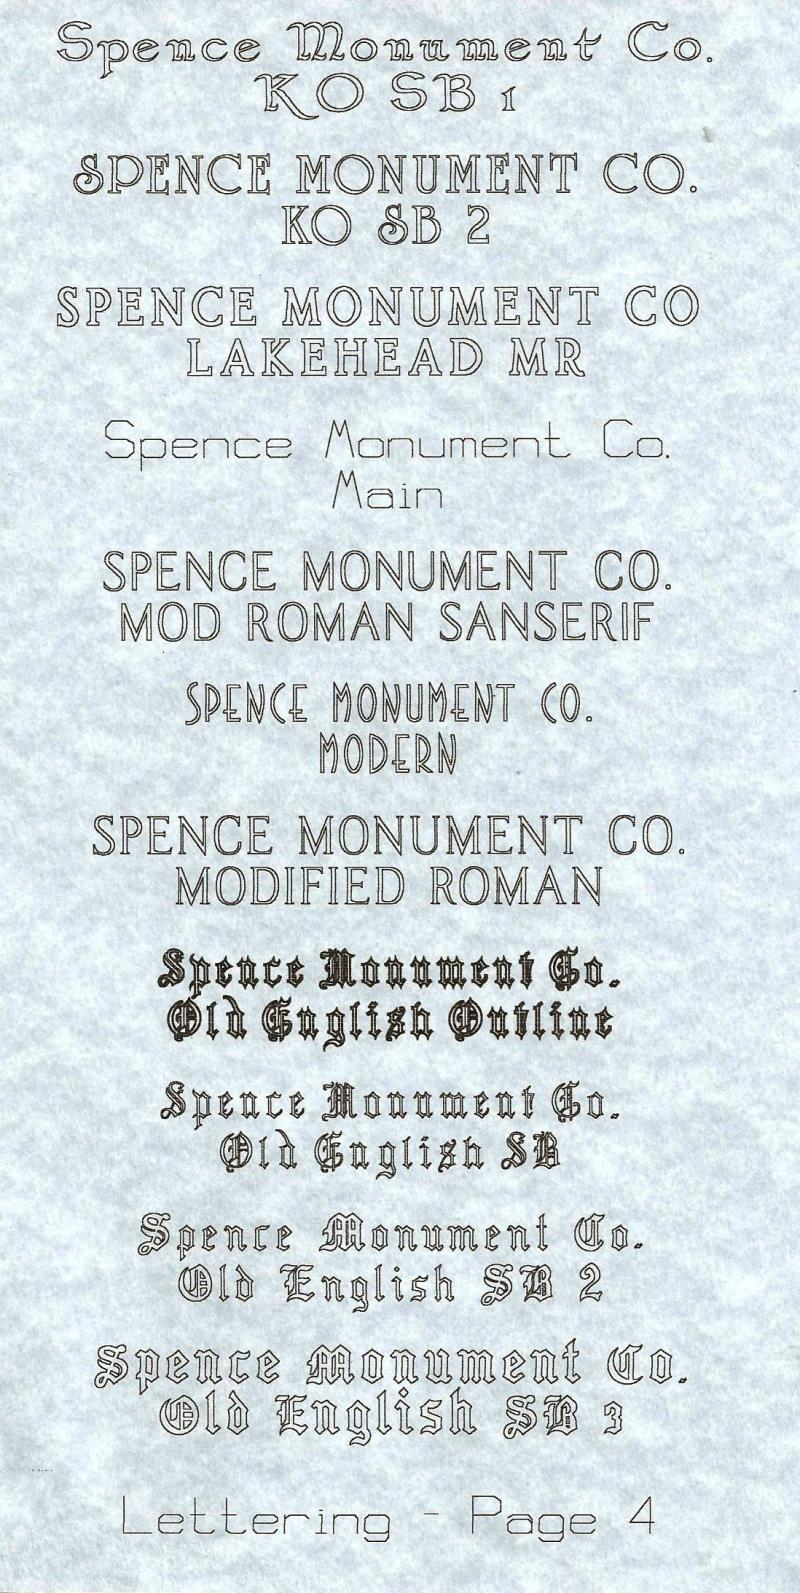 Spence Monument Company Lettering Styles